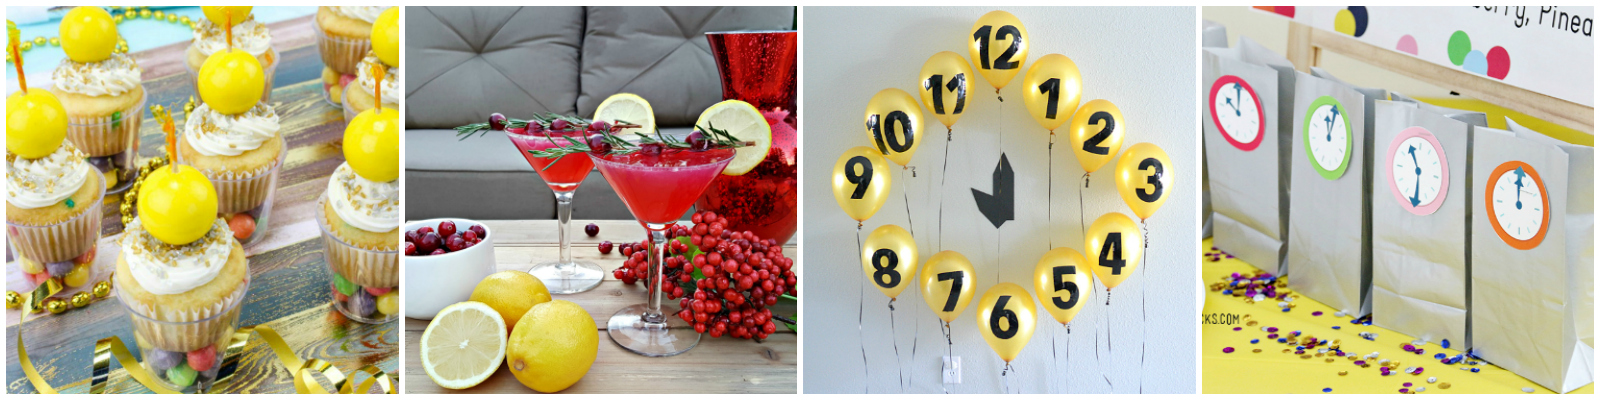 30+ New Year's Eve Party Ideas